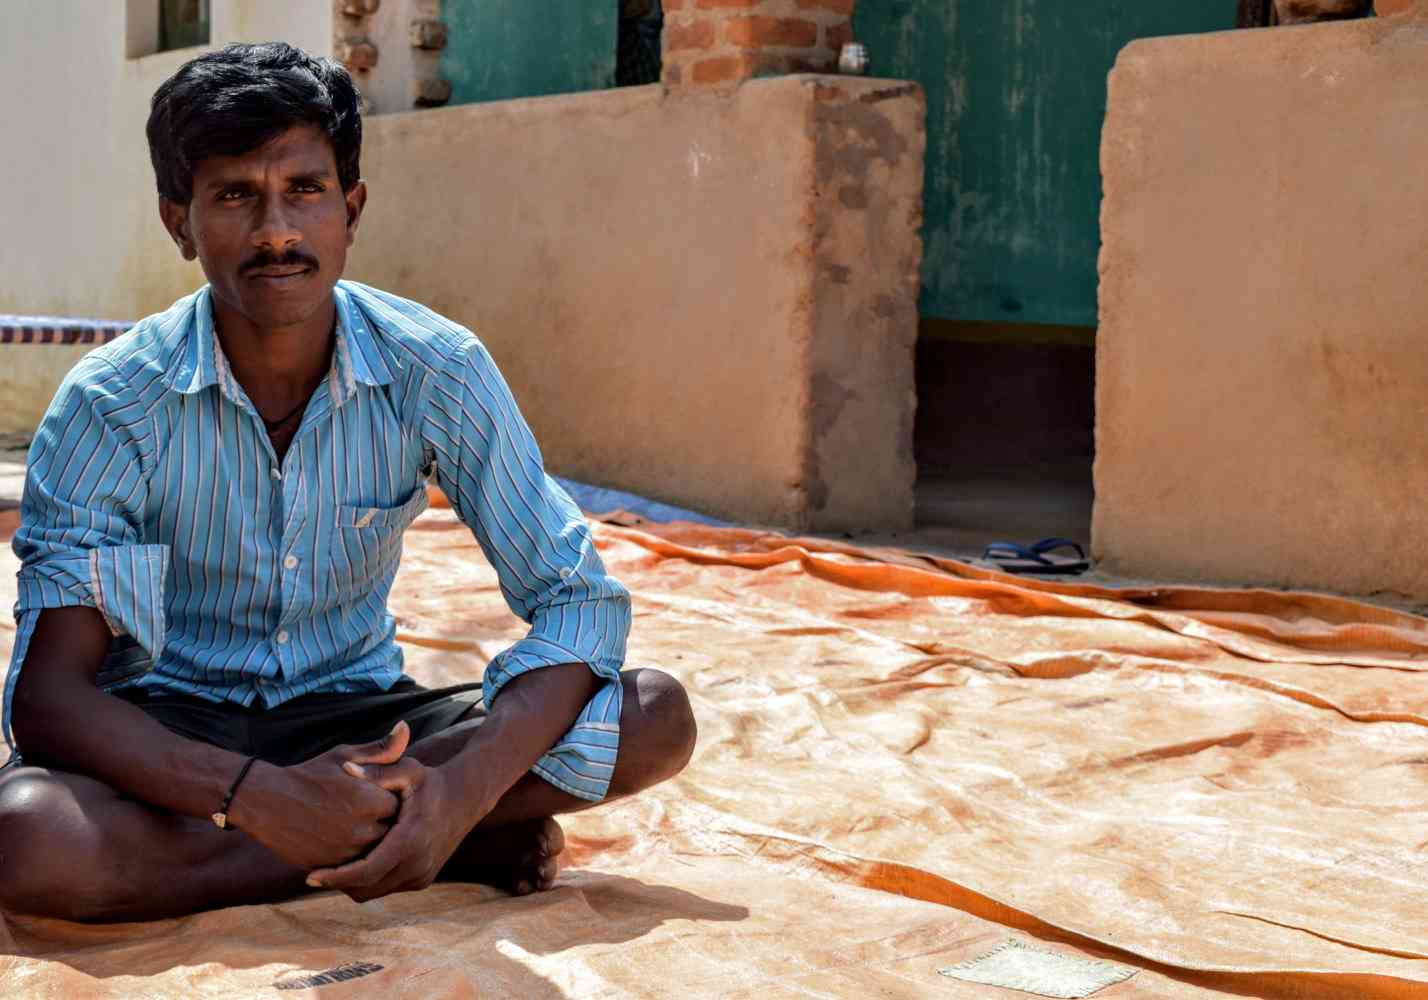 Hanumanth Goud would be eligible for the Modi government's farmer income support scheme. But he wants the government to fund NREGA instead. Photo: Aruna Chandrasekhar